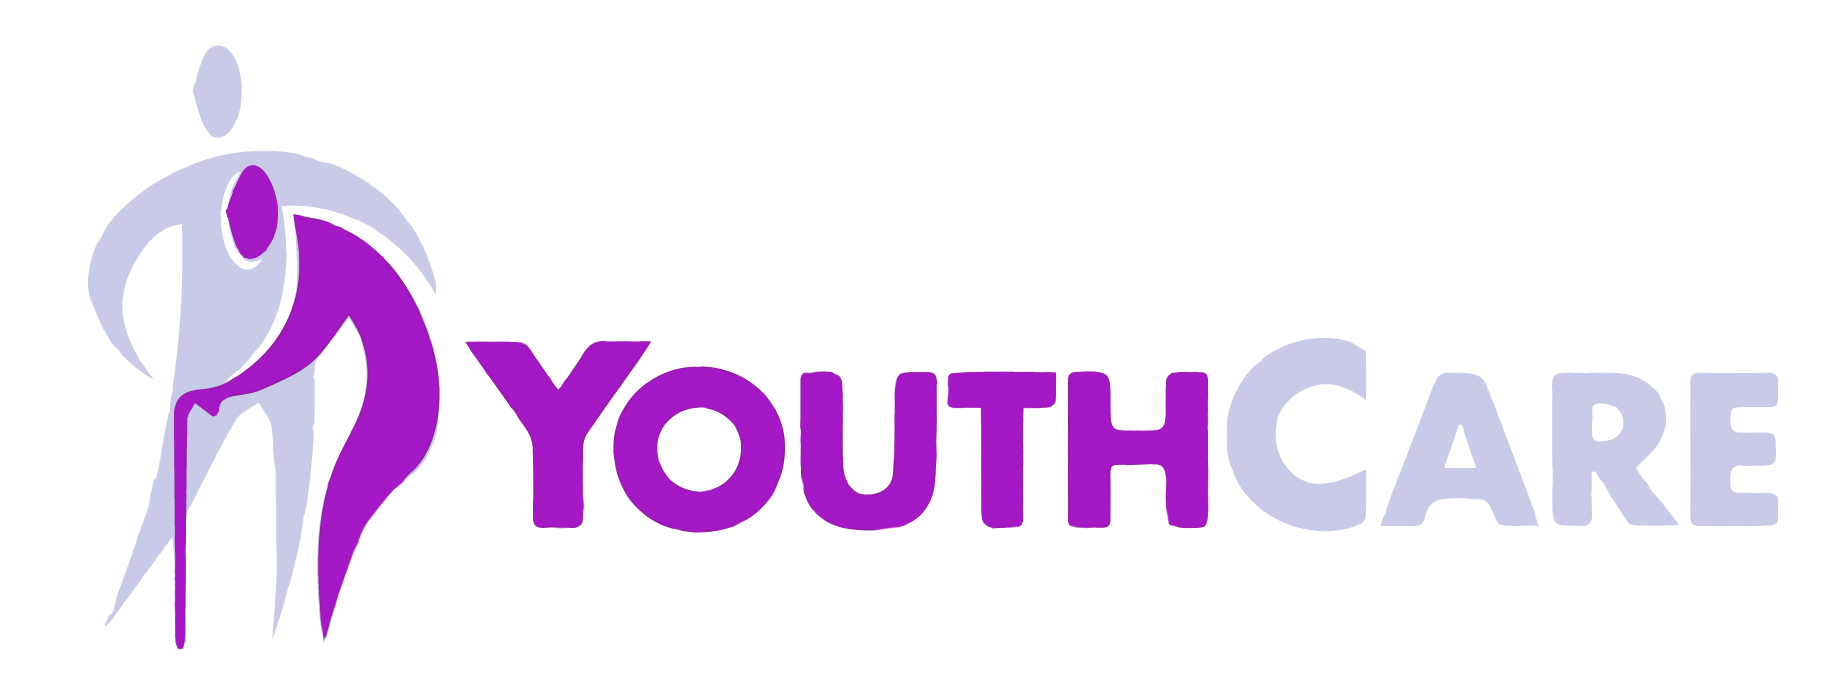 youthcaretransparent.png